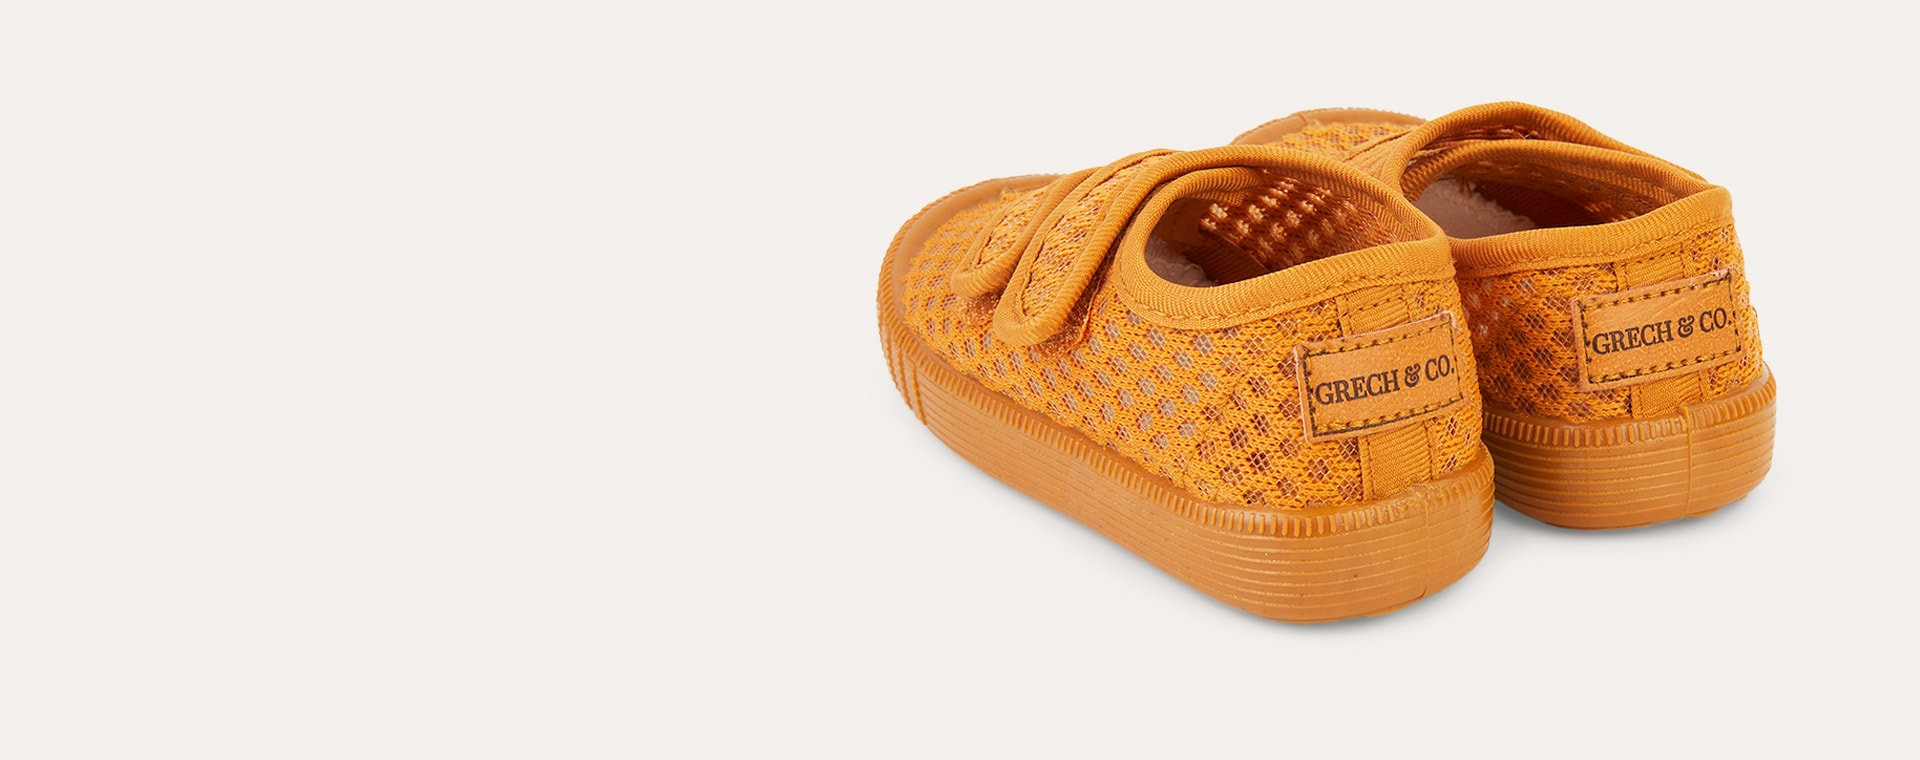 Spice Grech & Co Shoesies Play Shoes